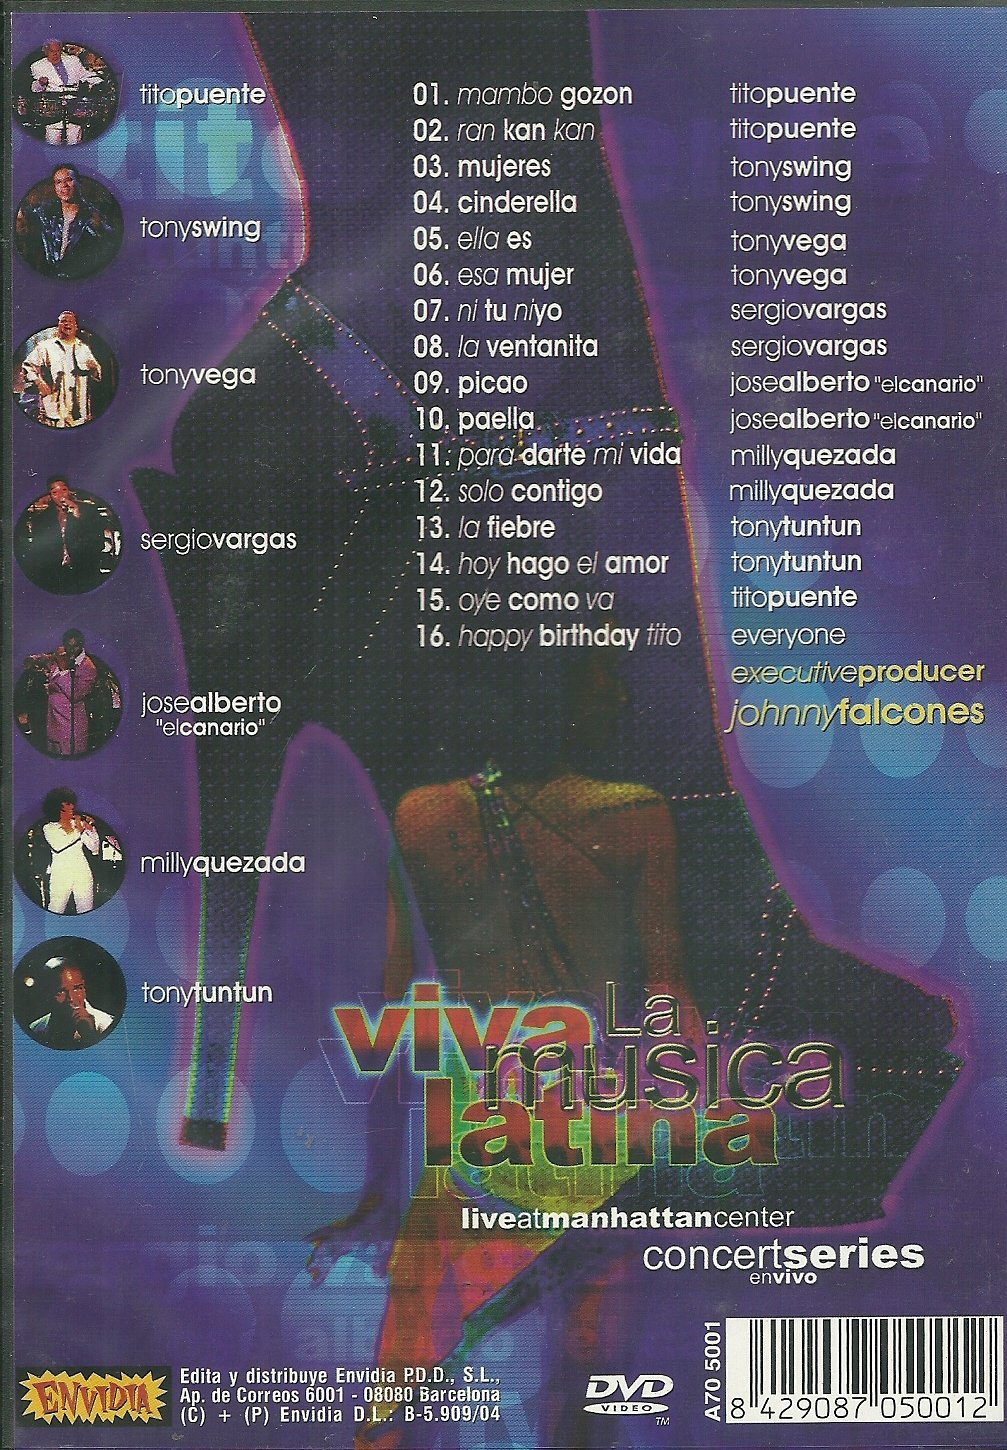 Viva la Musica Latina: Live at Manhattan Center by Viva 101